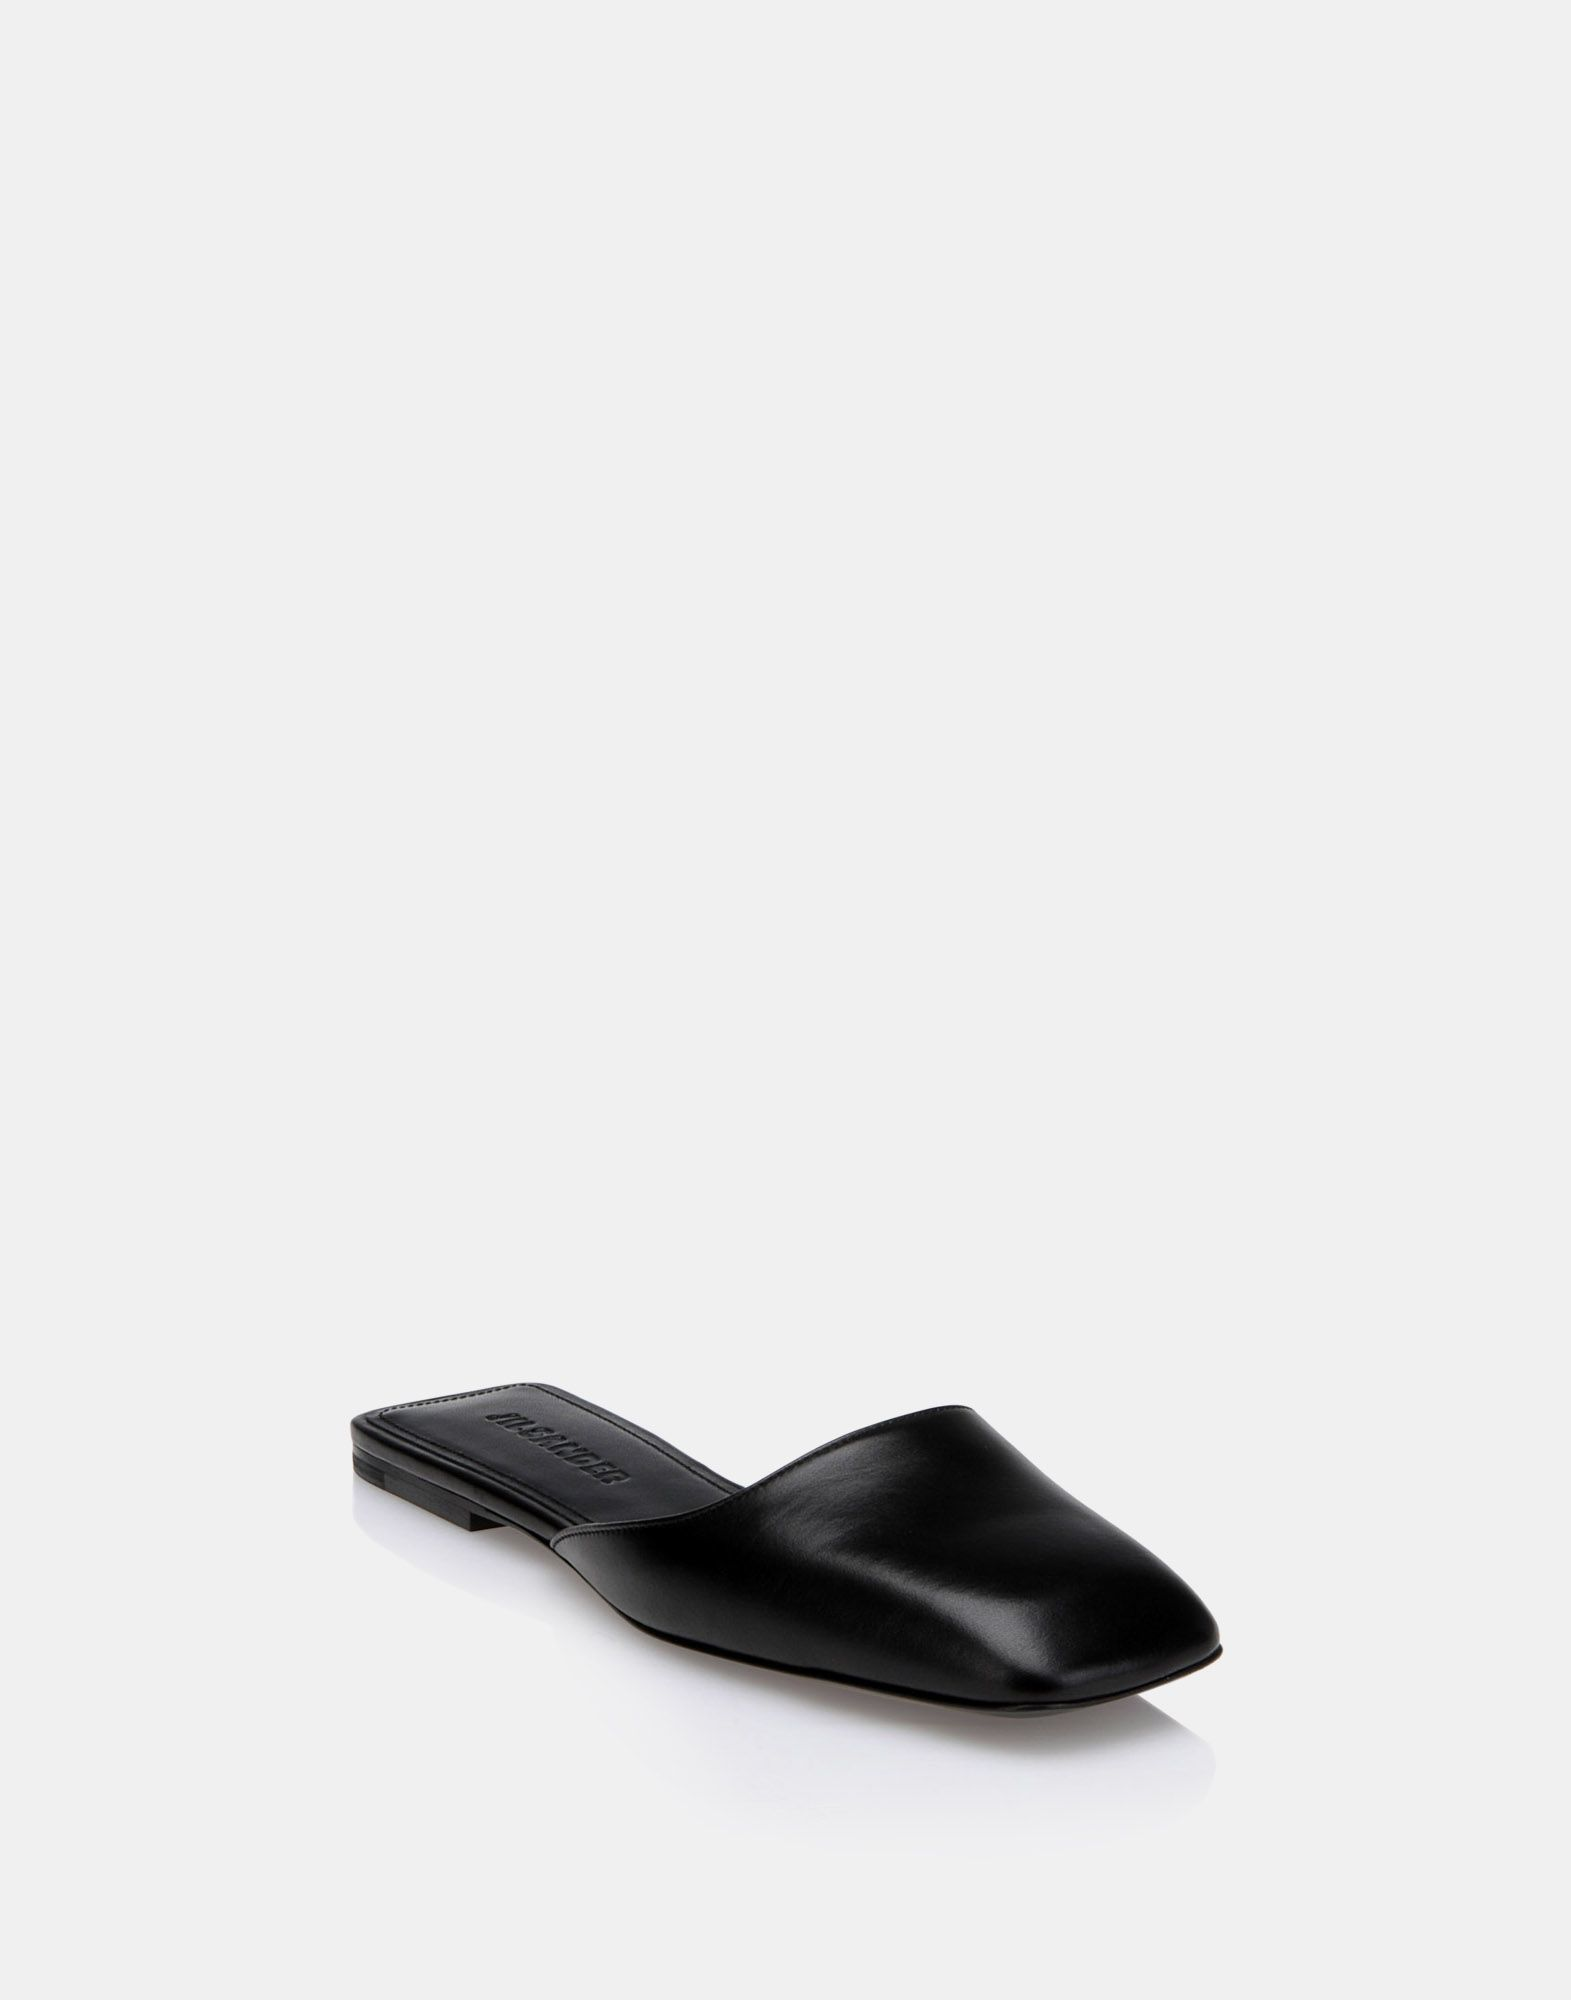 Jil Sander Leather Sandals Cheap Shop Mb5nHXAFd